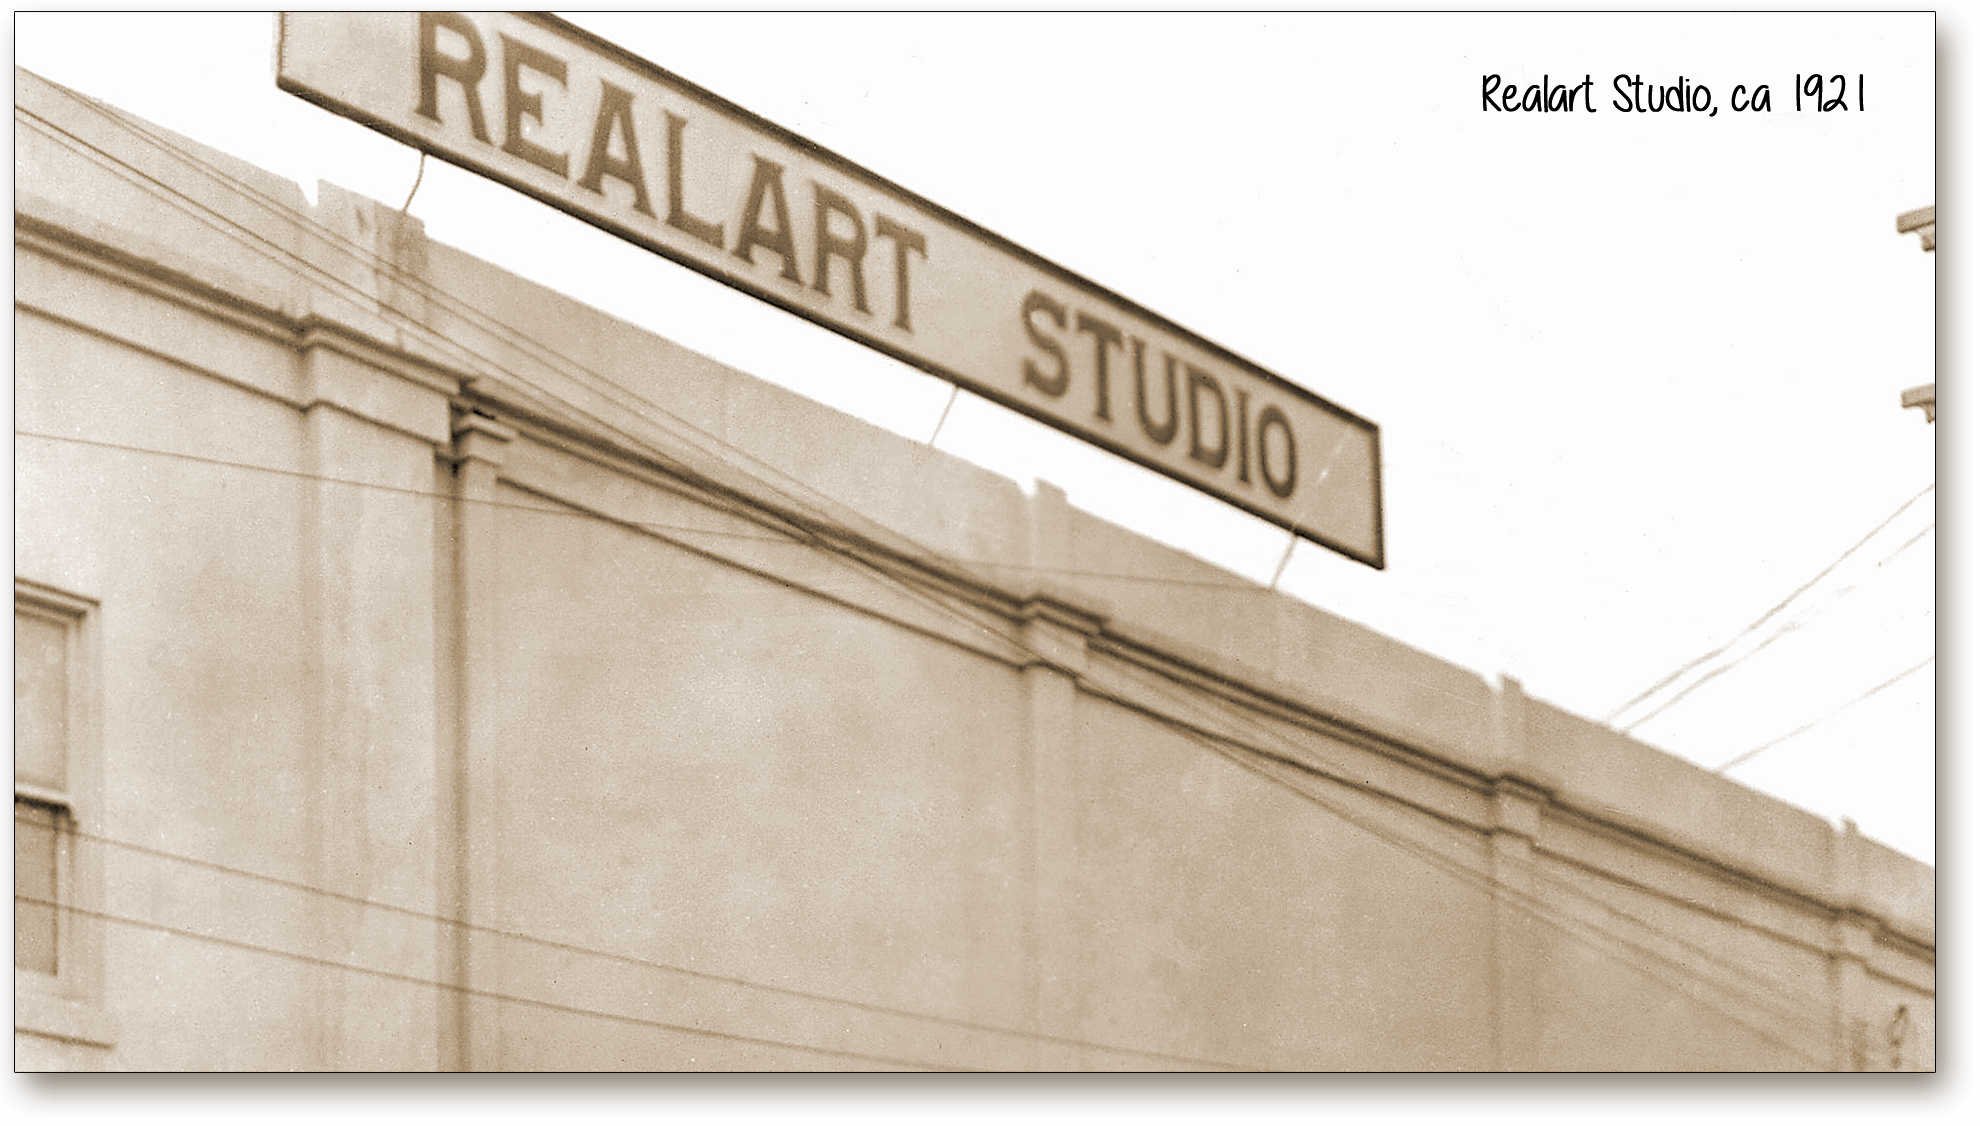 Realart sign 1921wb